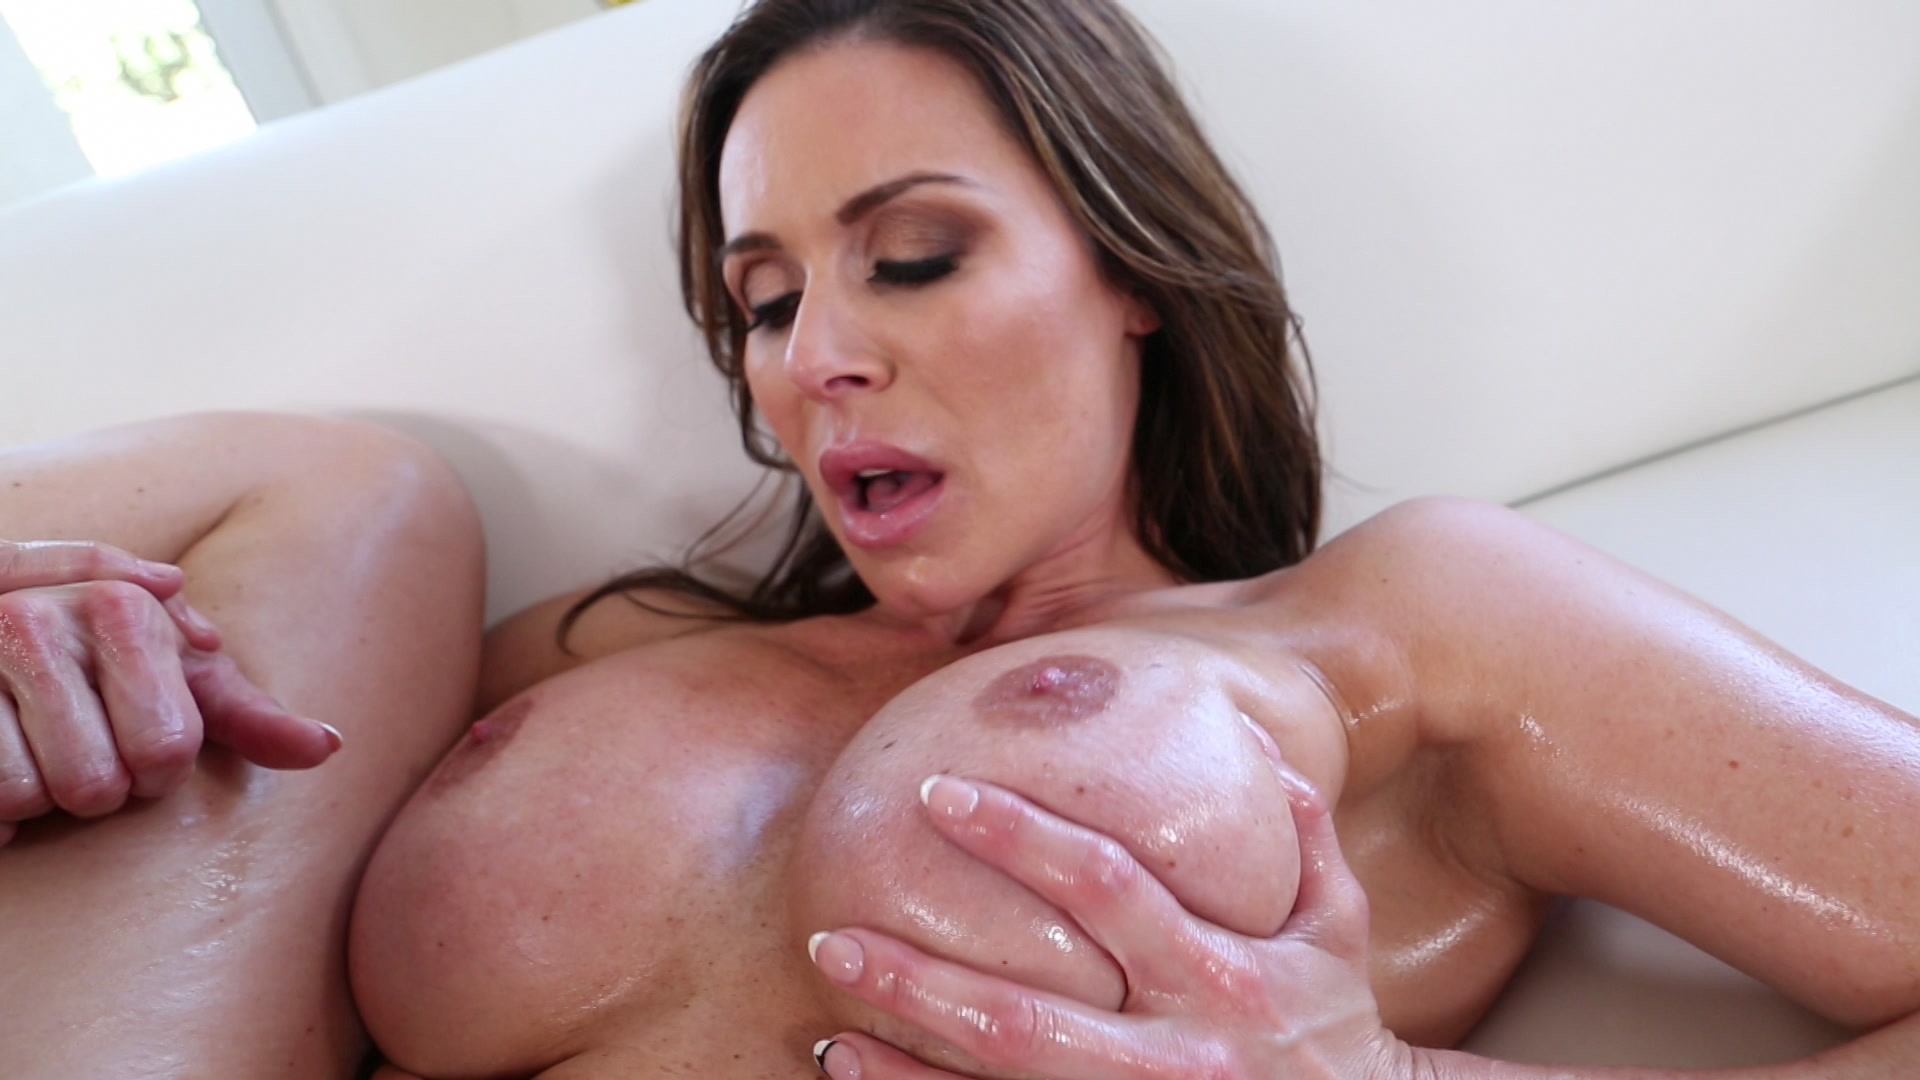 Wet milf video